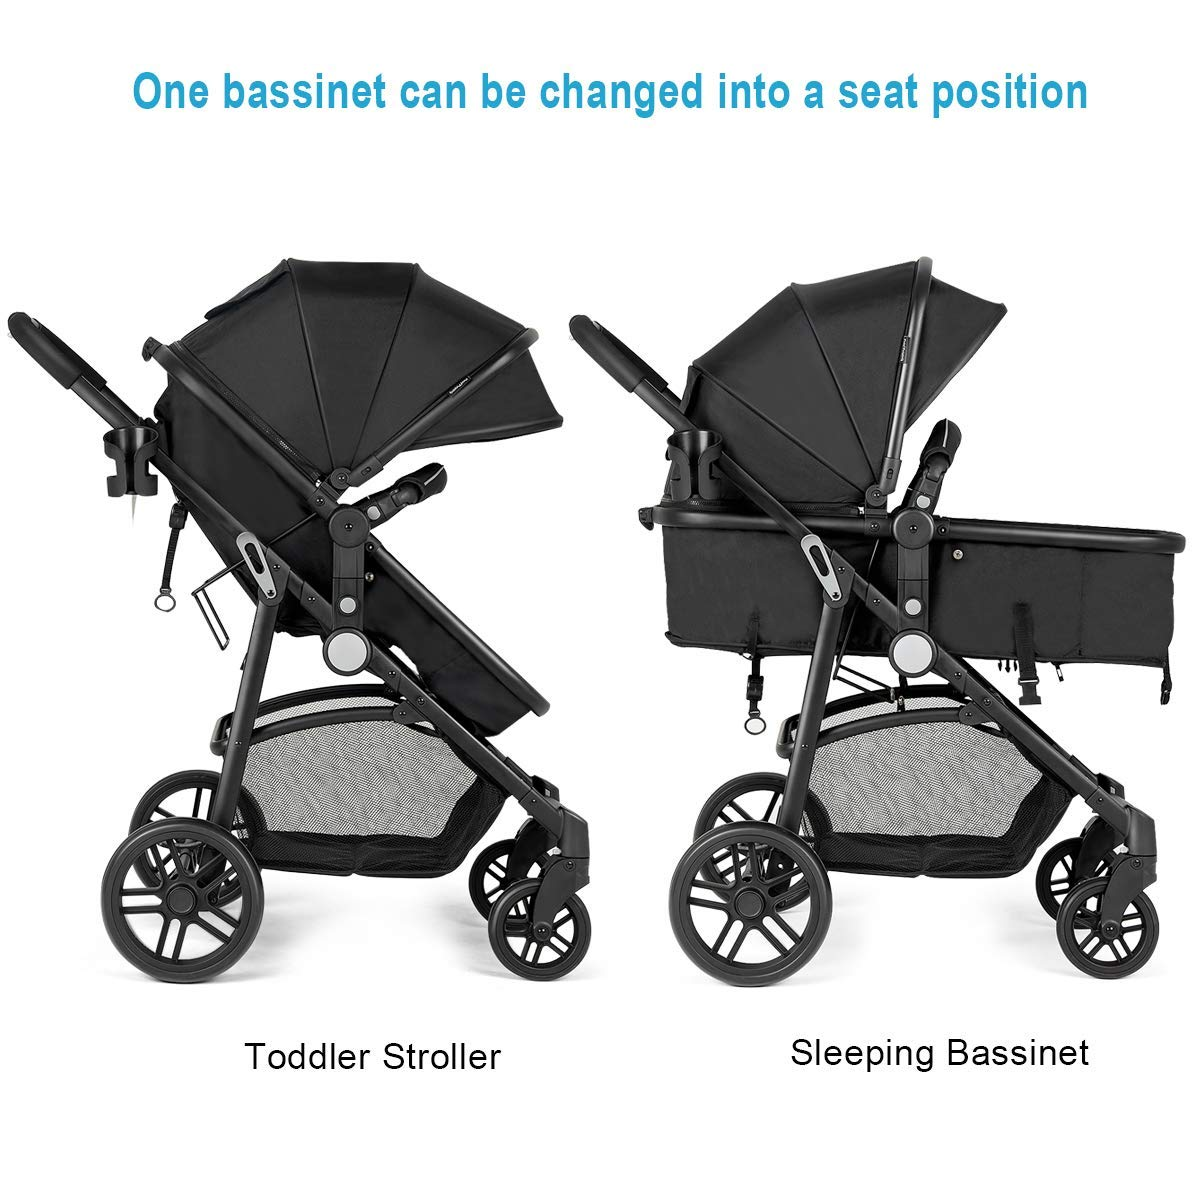 Costzon Baby Stroller, 2 in 1 Convertible Carriage Bassinet to Stroller, Pushchair with Foot Cover, Cup Holder, Large Storage Space, Wheels Suspension, 5-Point Harness Deluxe Black